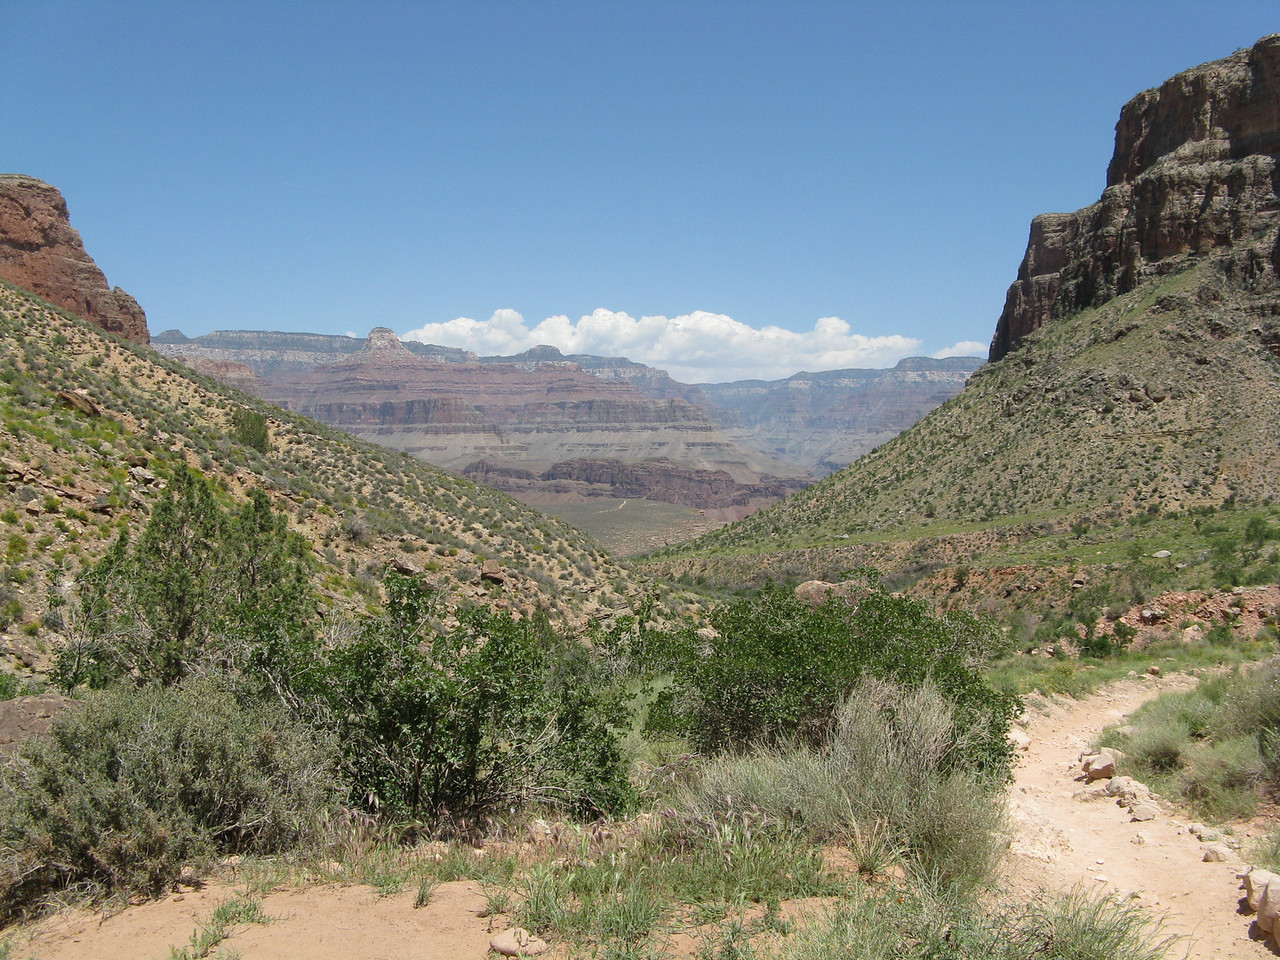 Looking back at the canyon from the Bright Angel Trail above Indian Garden.